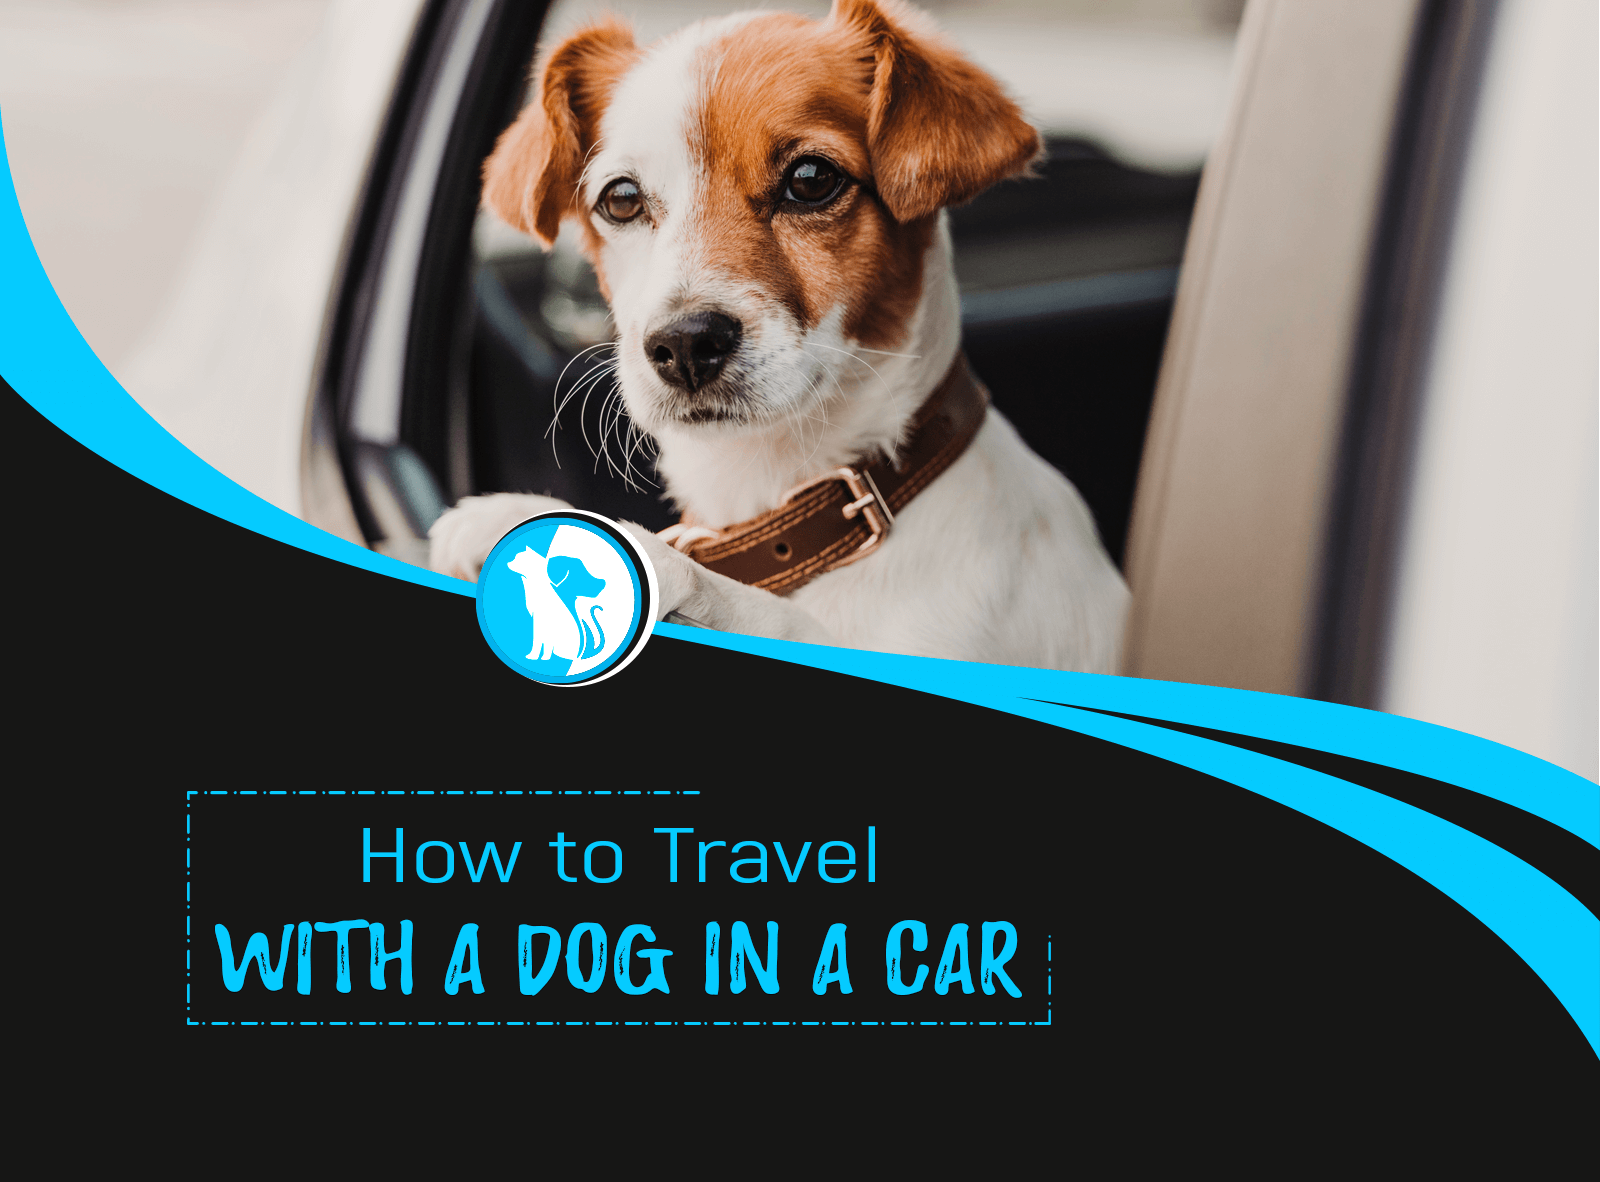 How to Travel with a Dog in a Car?